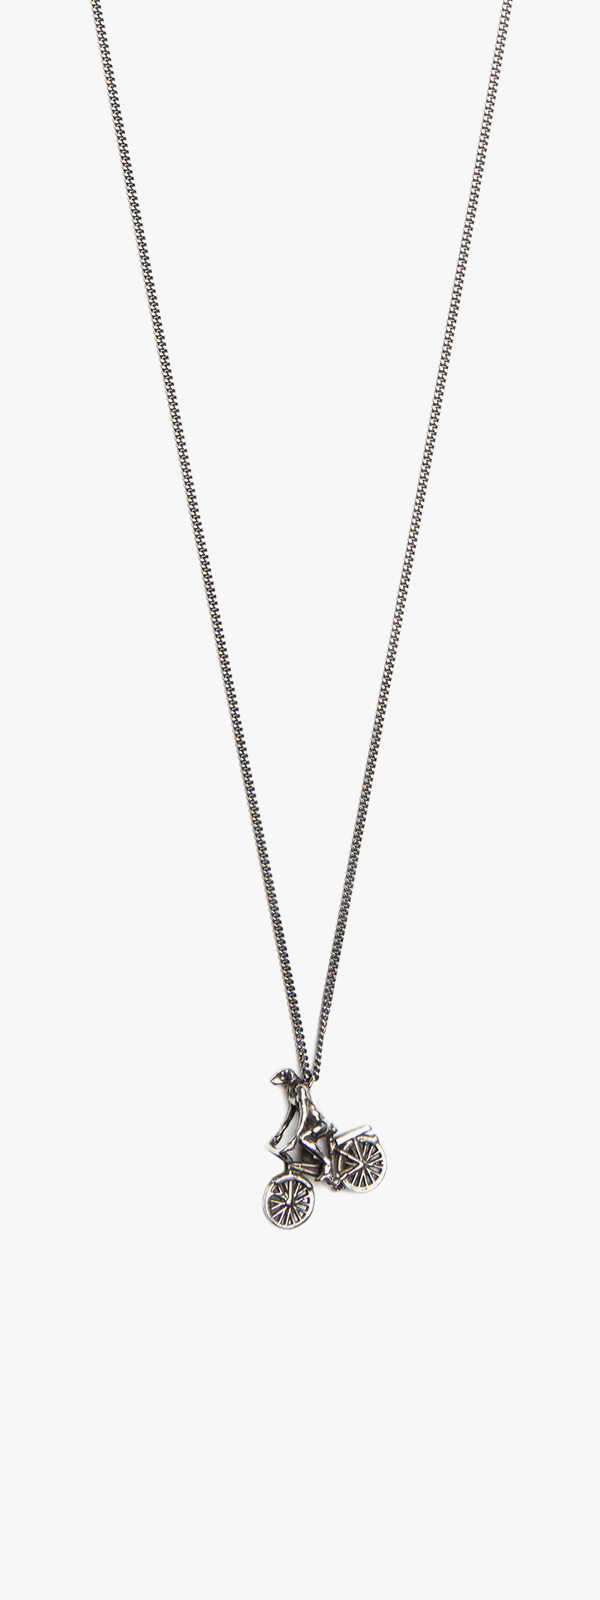 Image of Bike Ride Necklace 098